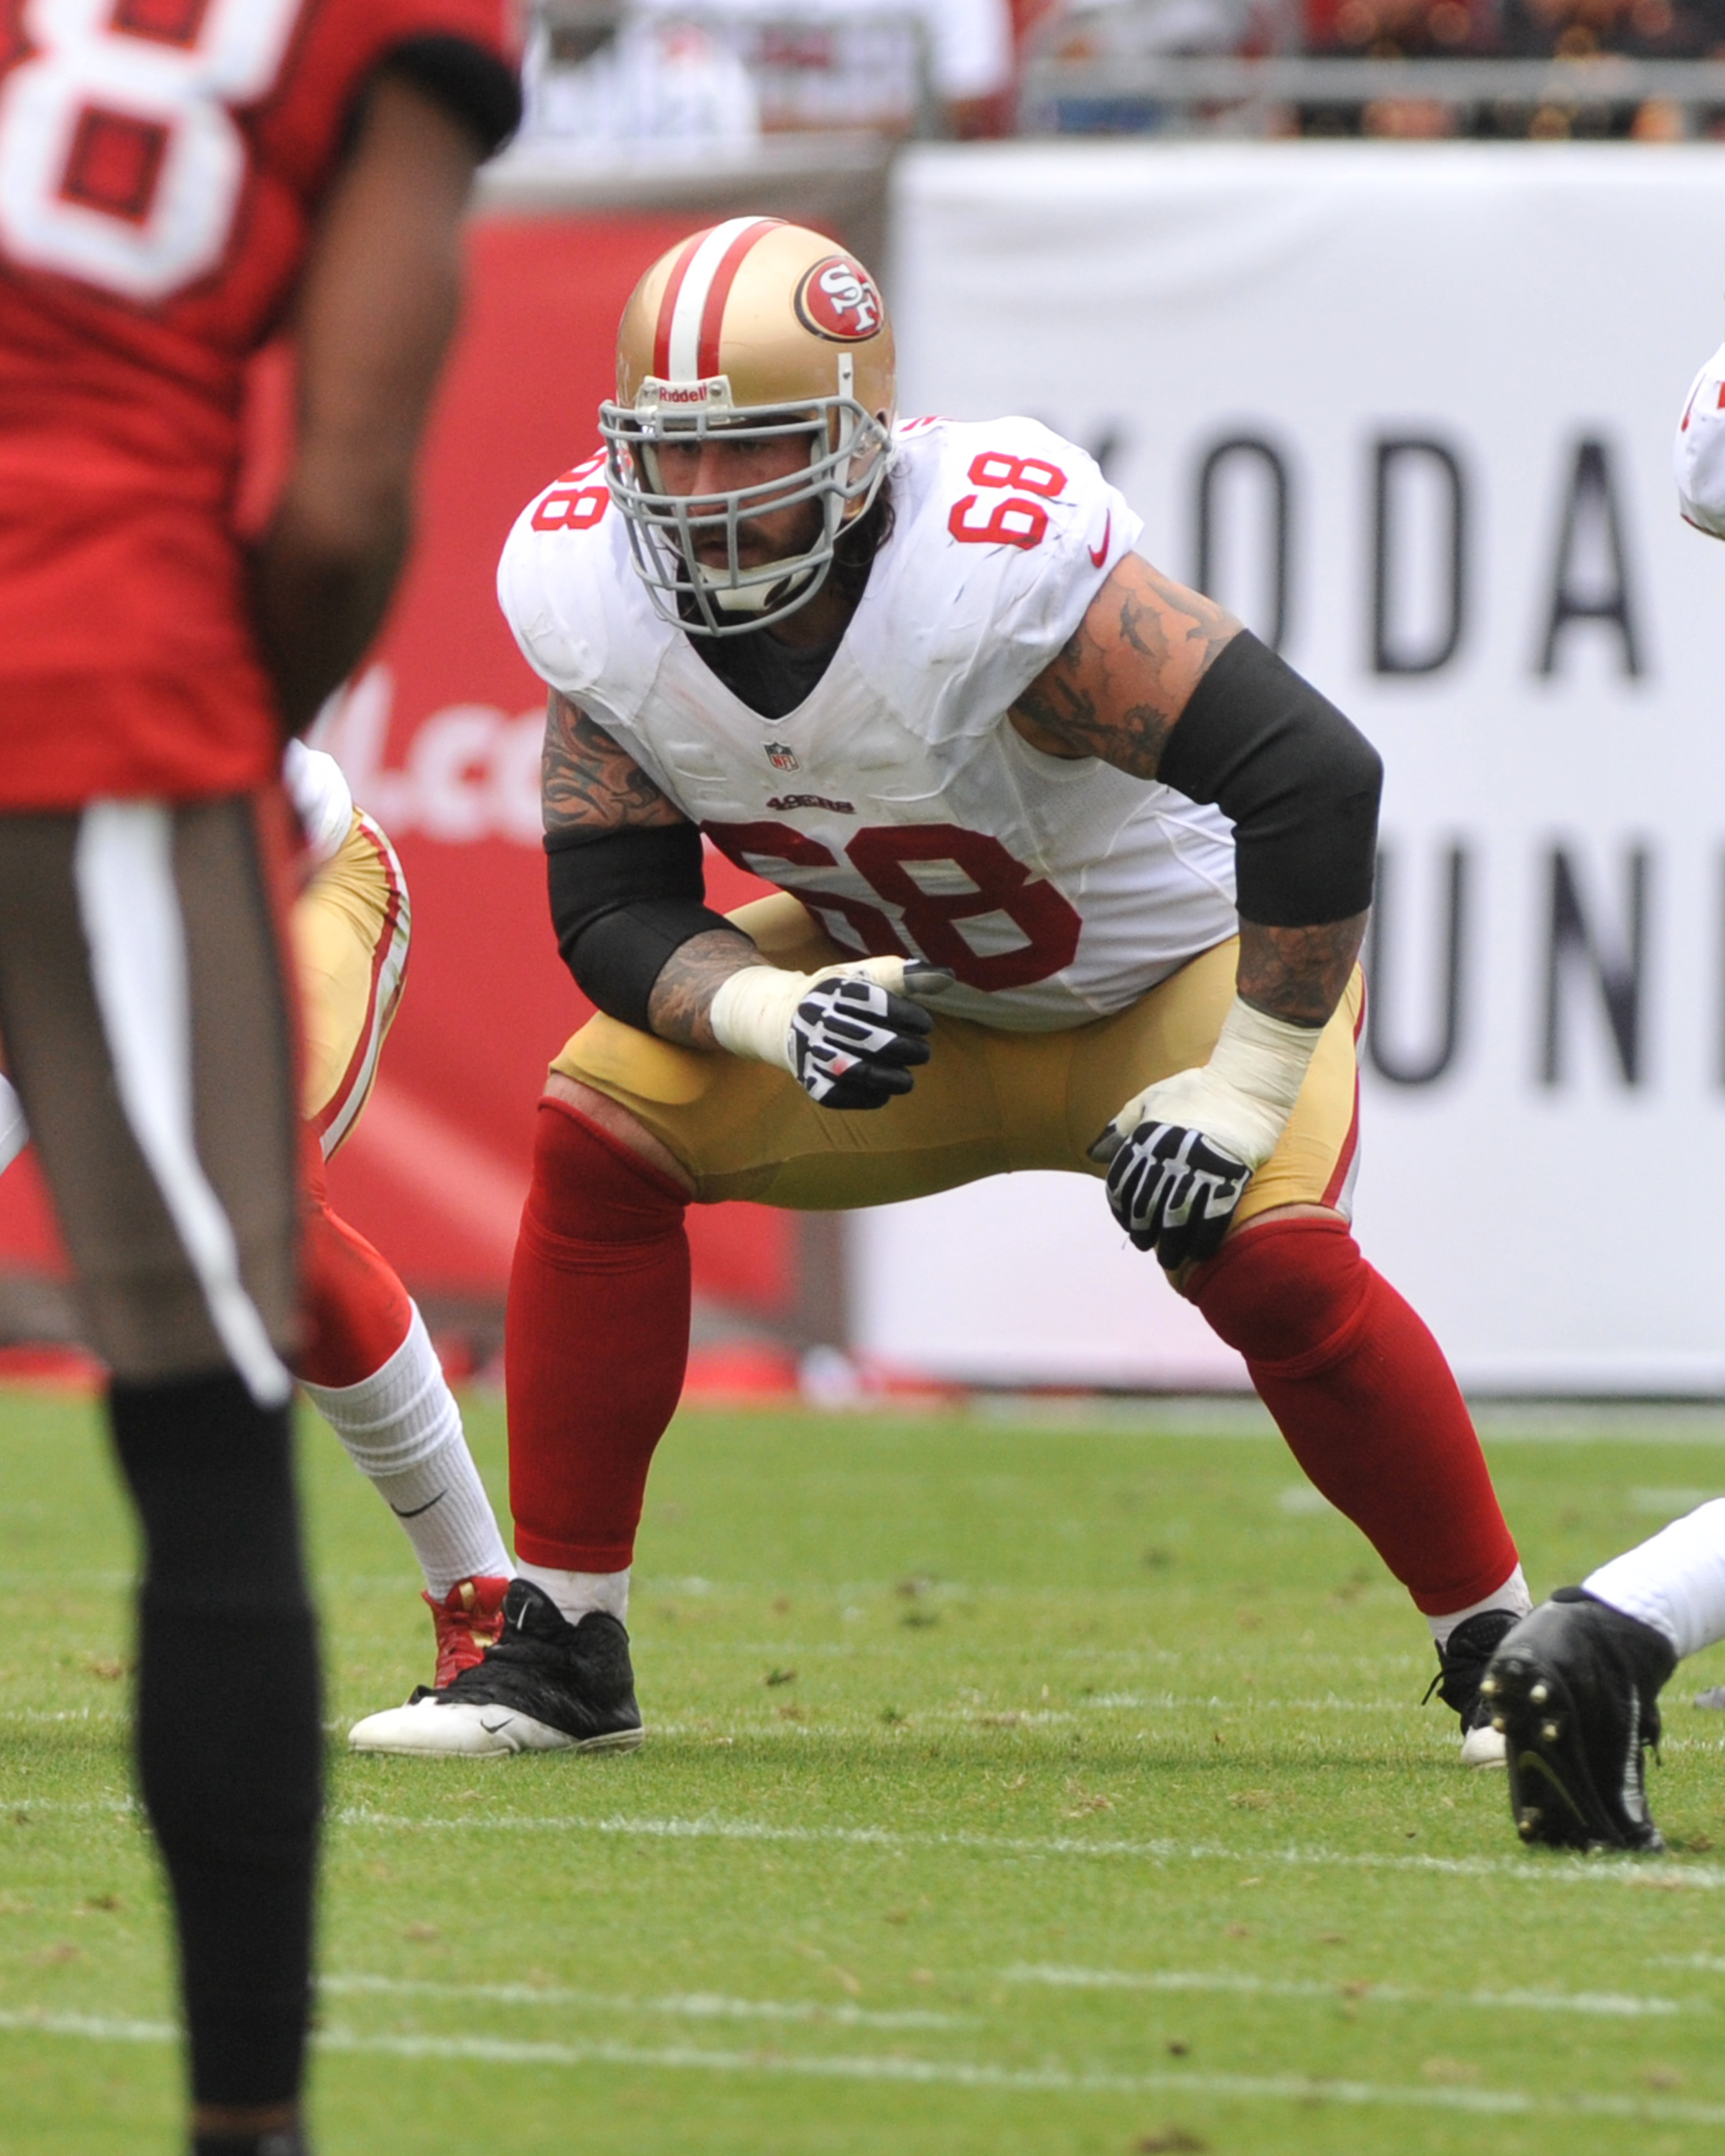 Adam Snyder with the 49ers